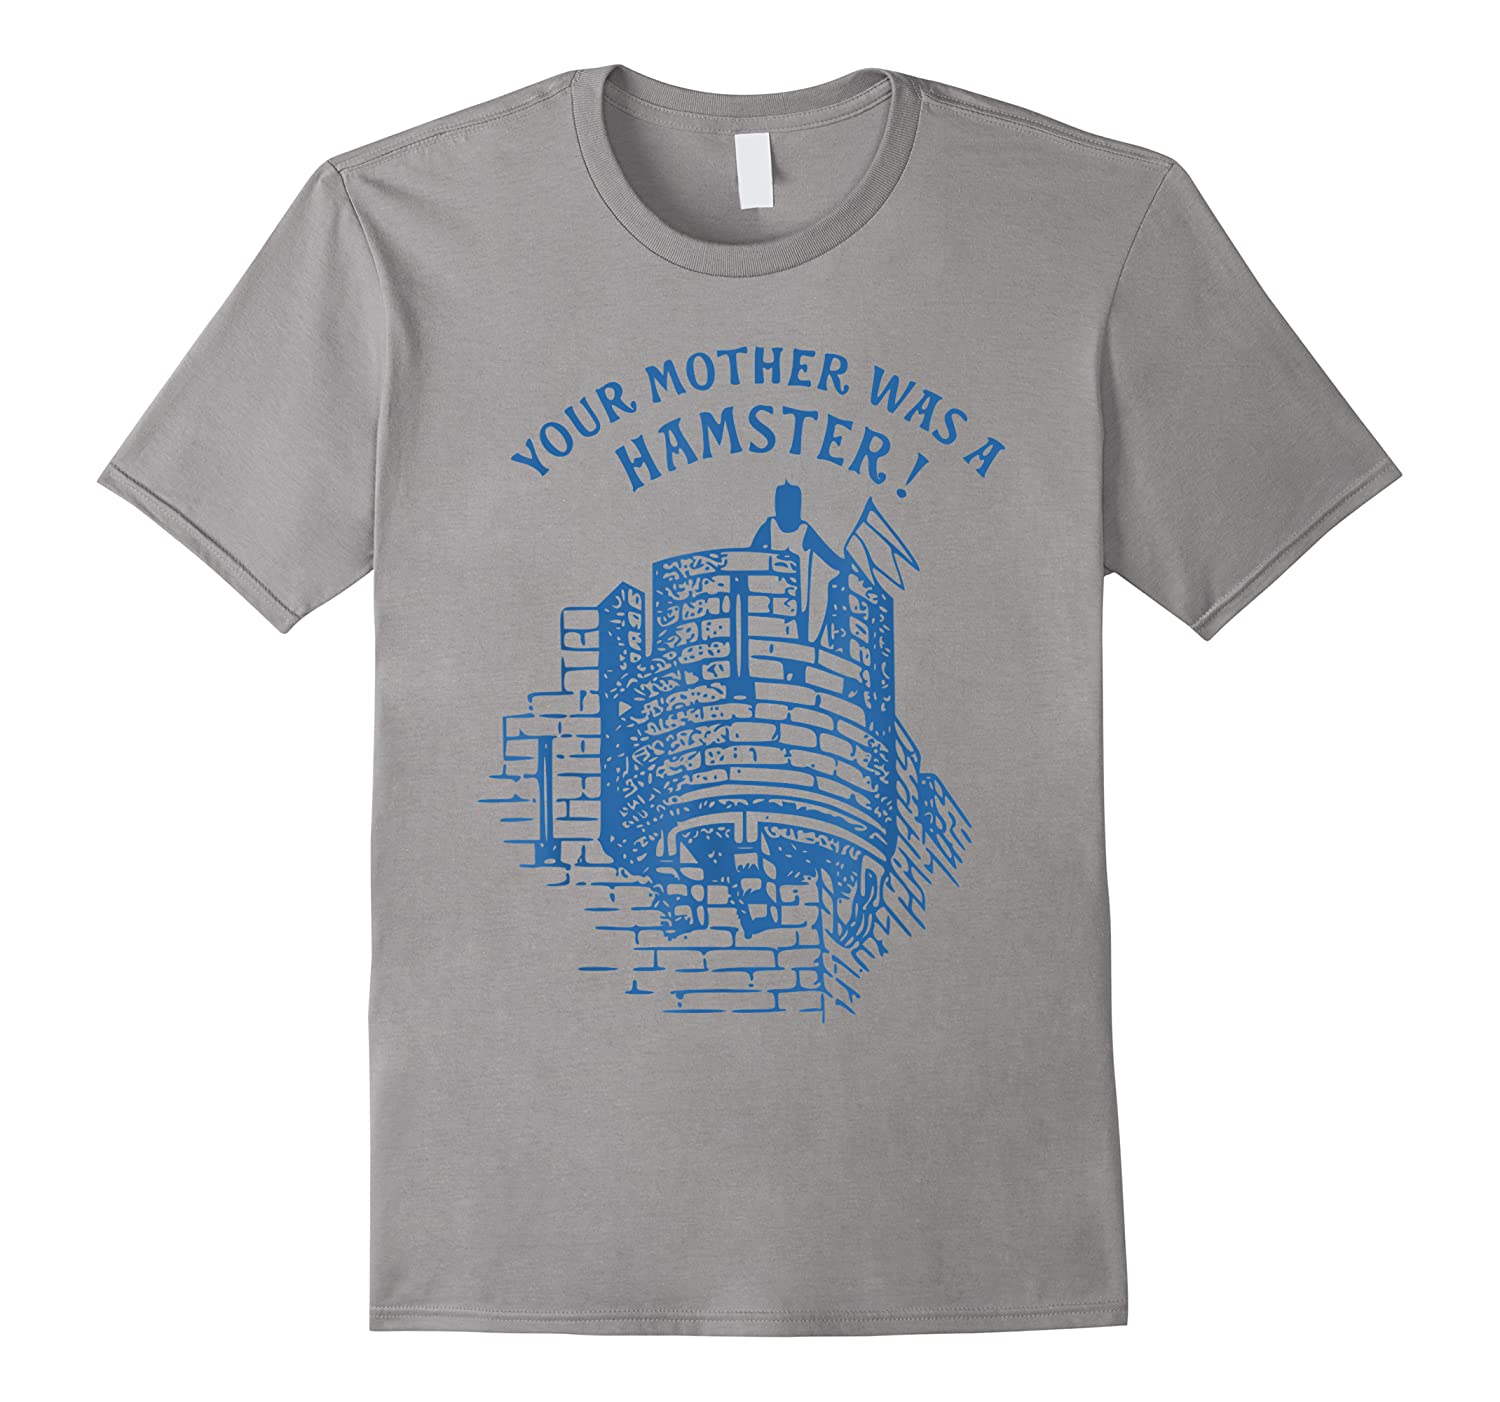 Your Mother Was A Hamster British Humor Funny Shirts